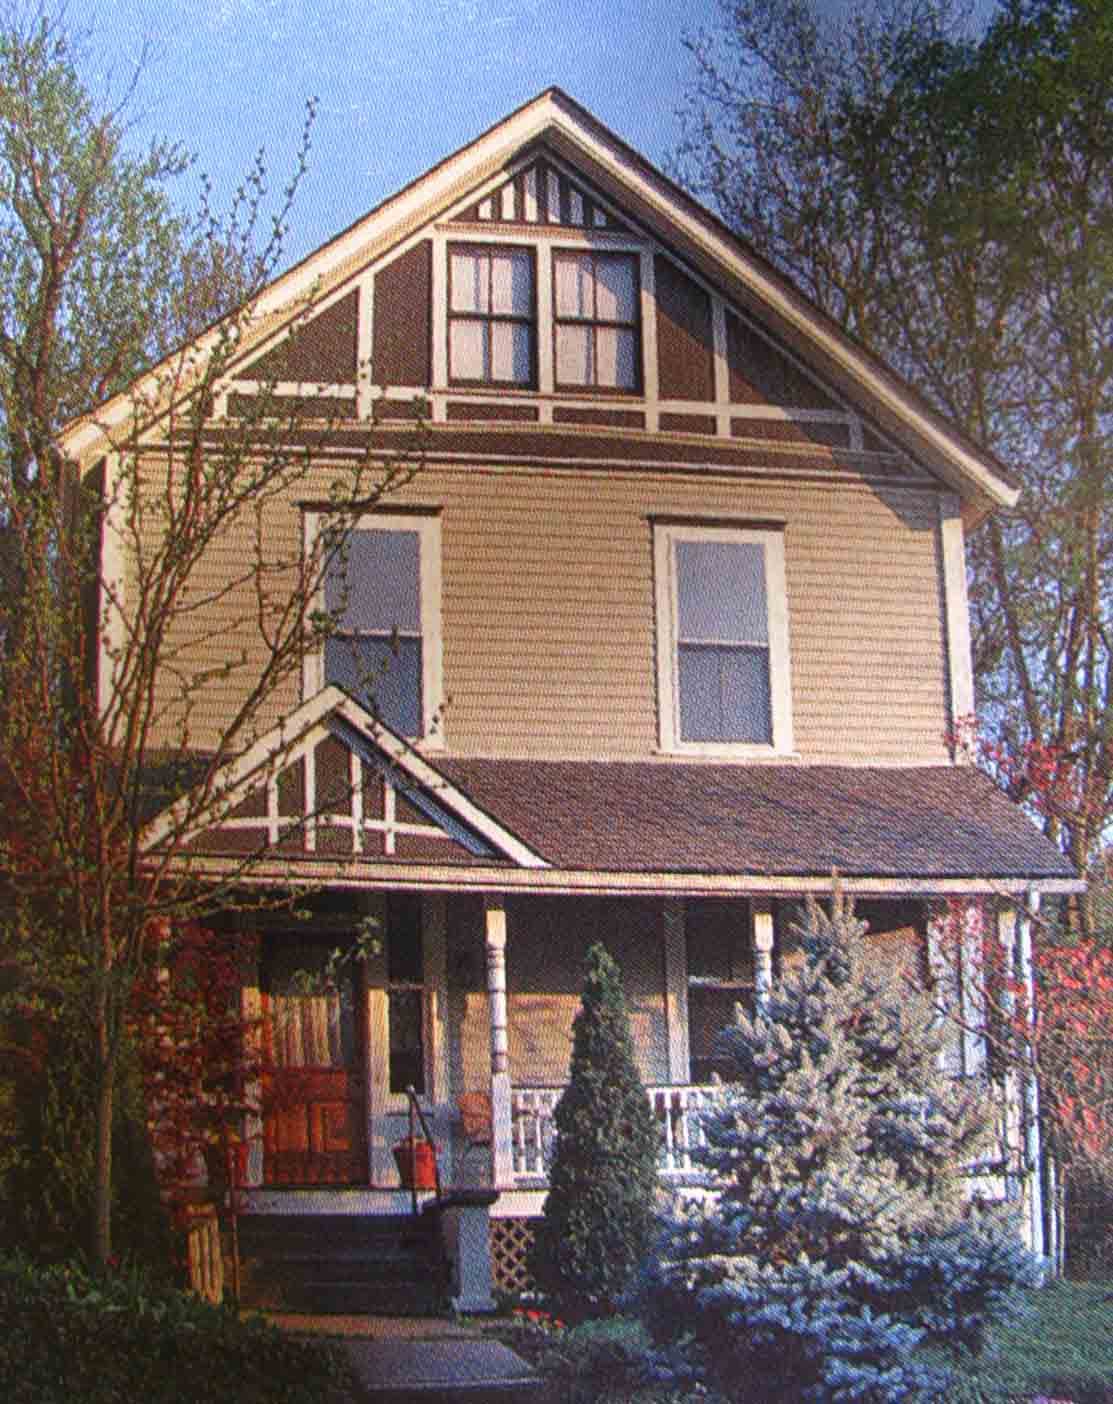 Vinyl vs wood siding your house oldhouseguy blog for Homes with wood siding